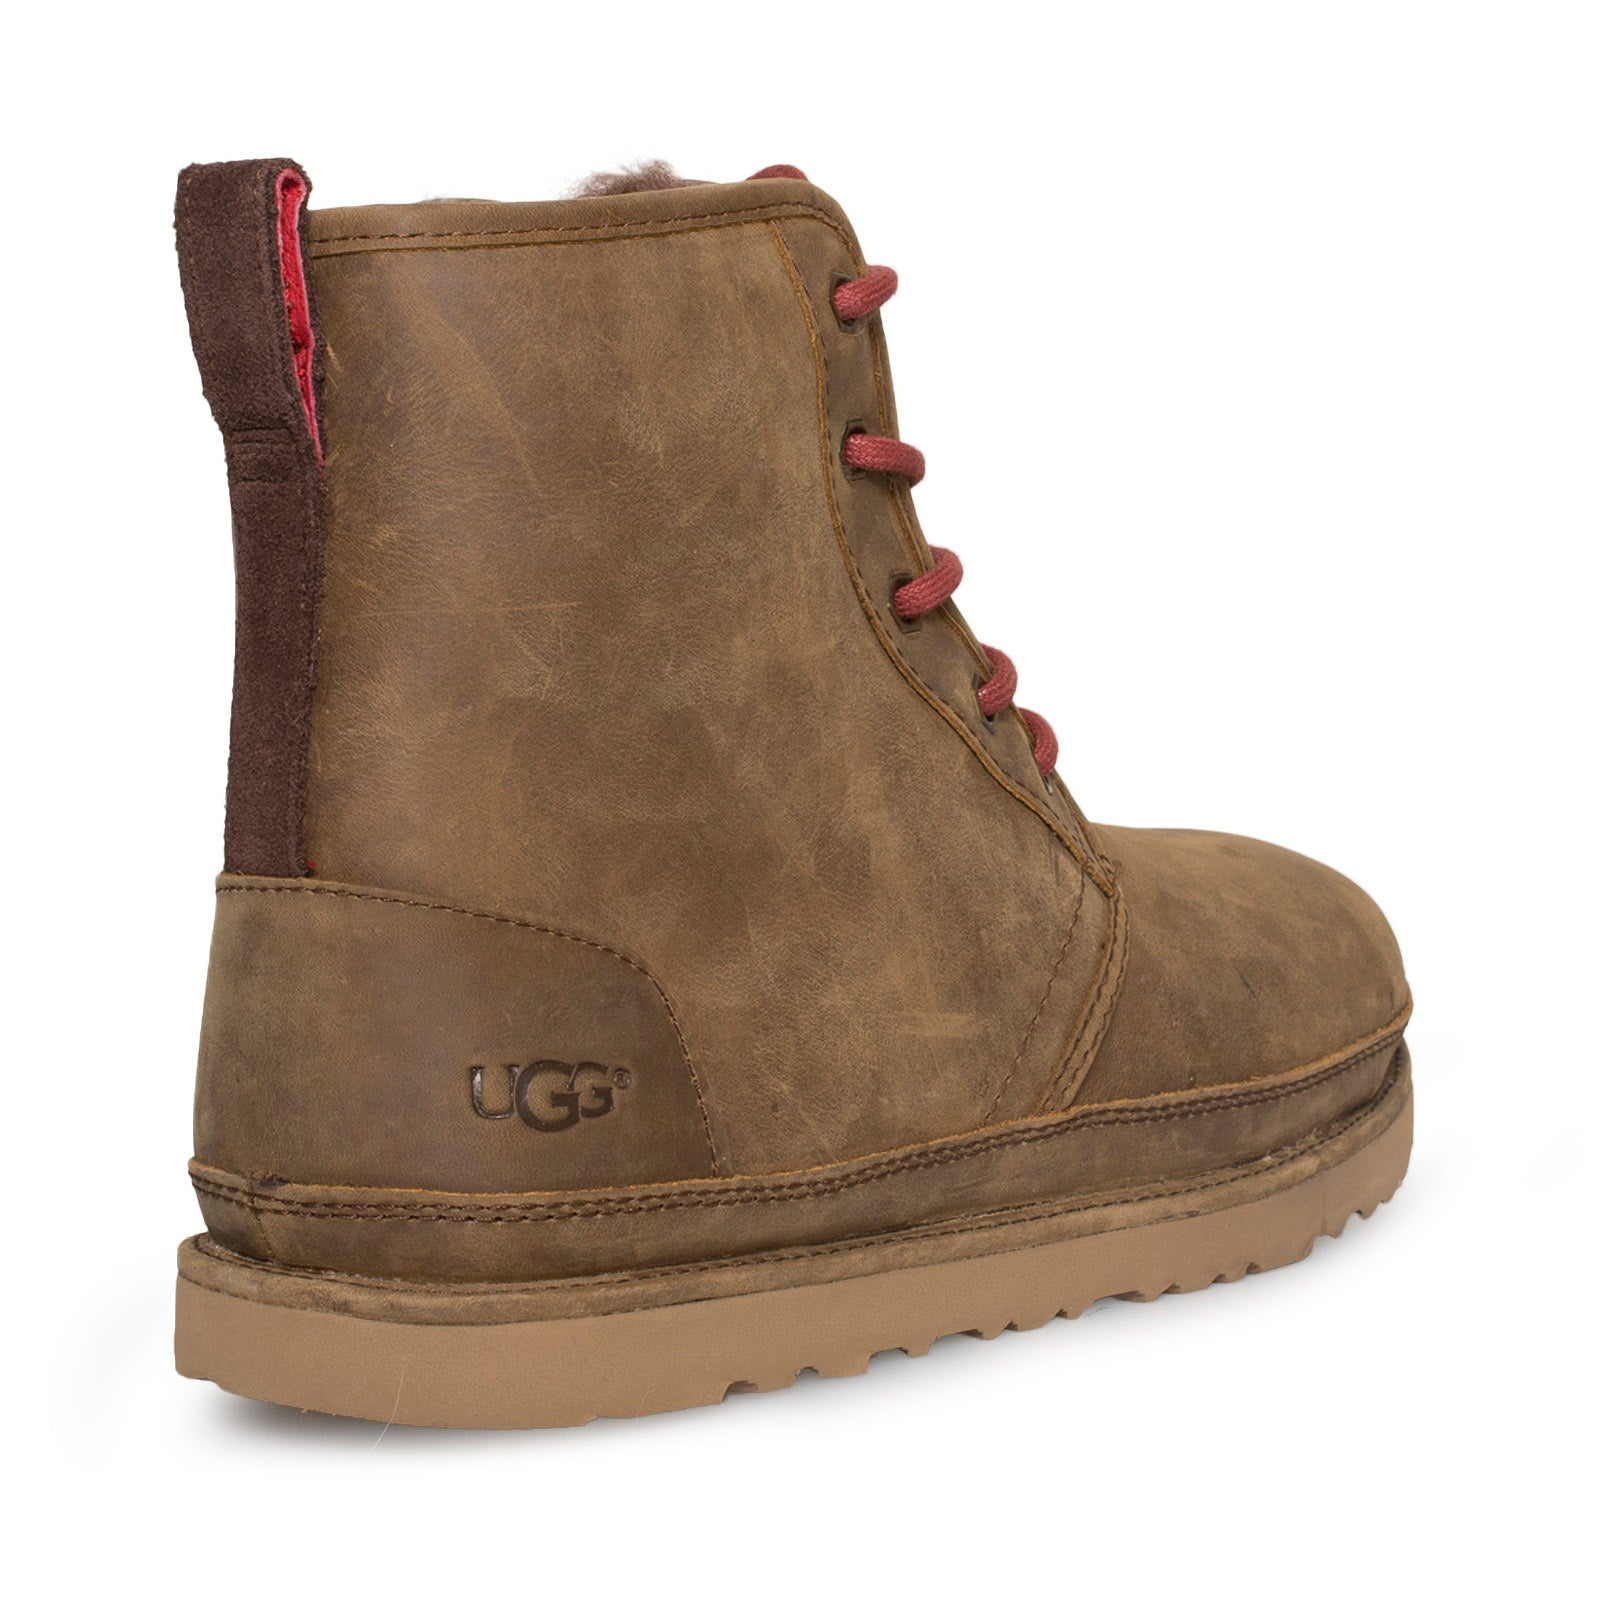 4546c3c2bb9 UGG Harkley Grizzly Boots